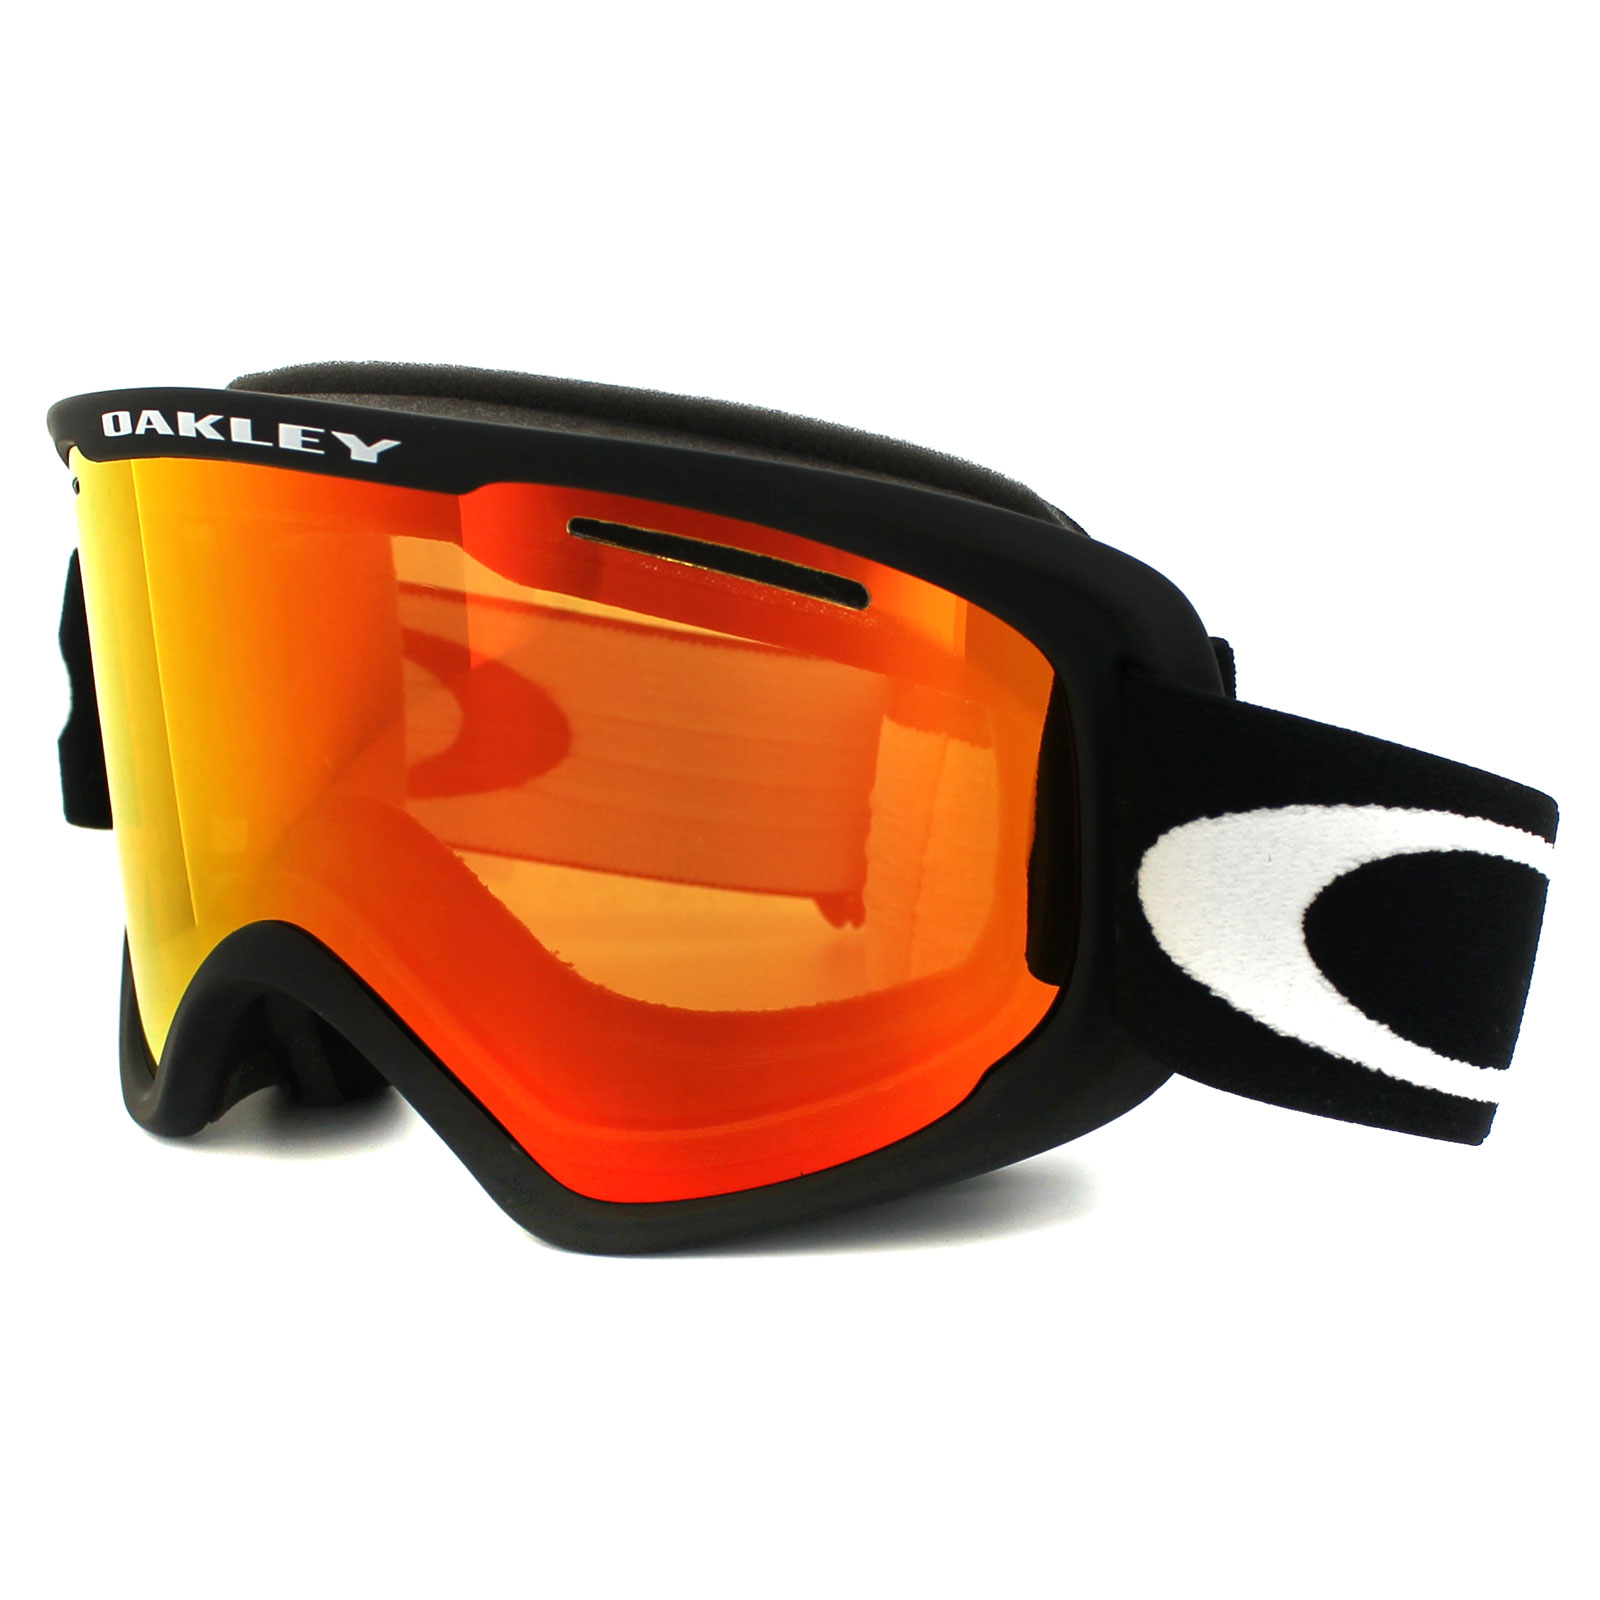 d4c6dbce0ca8 Cheap Oakley 02 XM Ski Goggles - Discounted Sunglasses